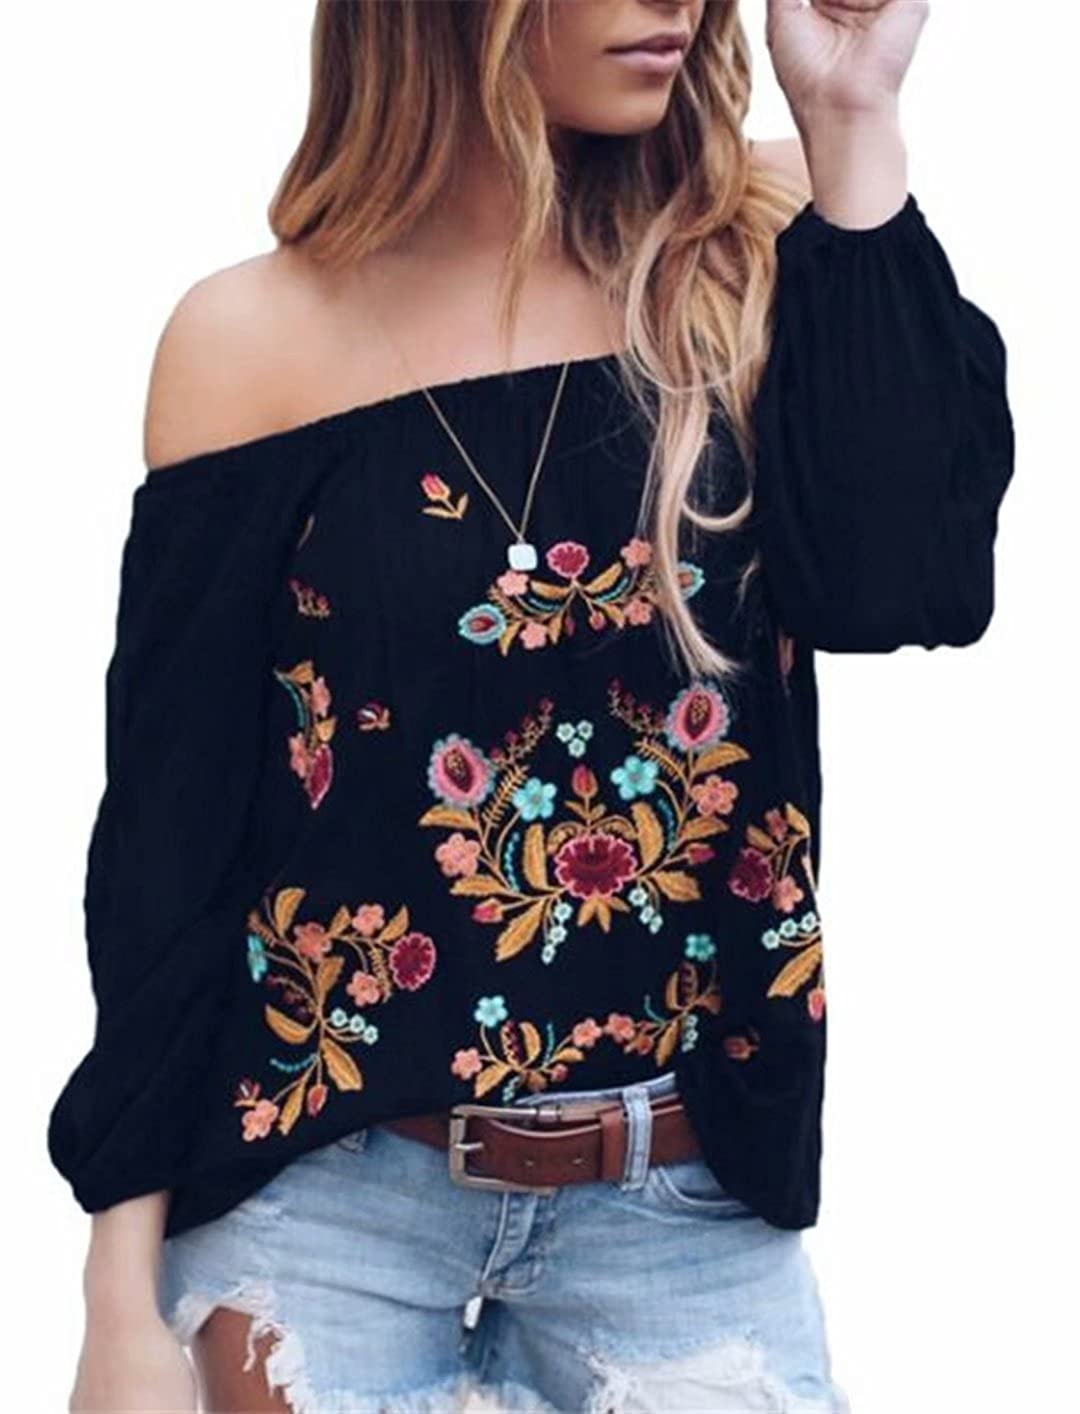 f4ac19b5b925ab Amazon.com  Womens Sexy Off The Shoulder Tops Long Sleeve Boho Floral  Embroider Casual Blouse Shirt  Clothing